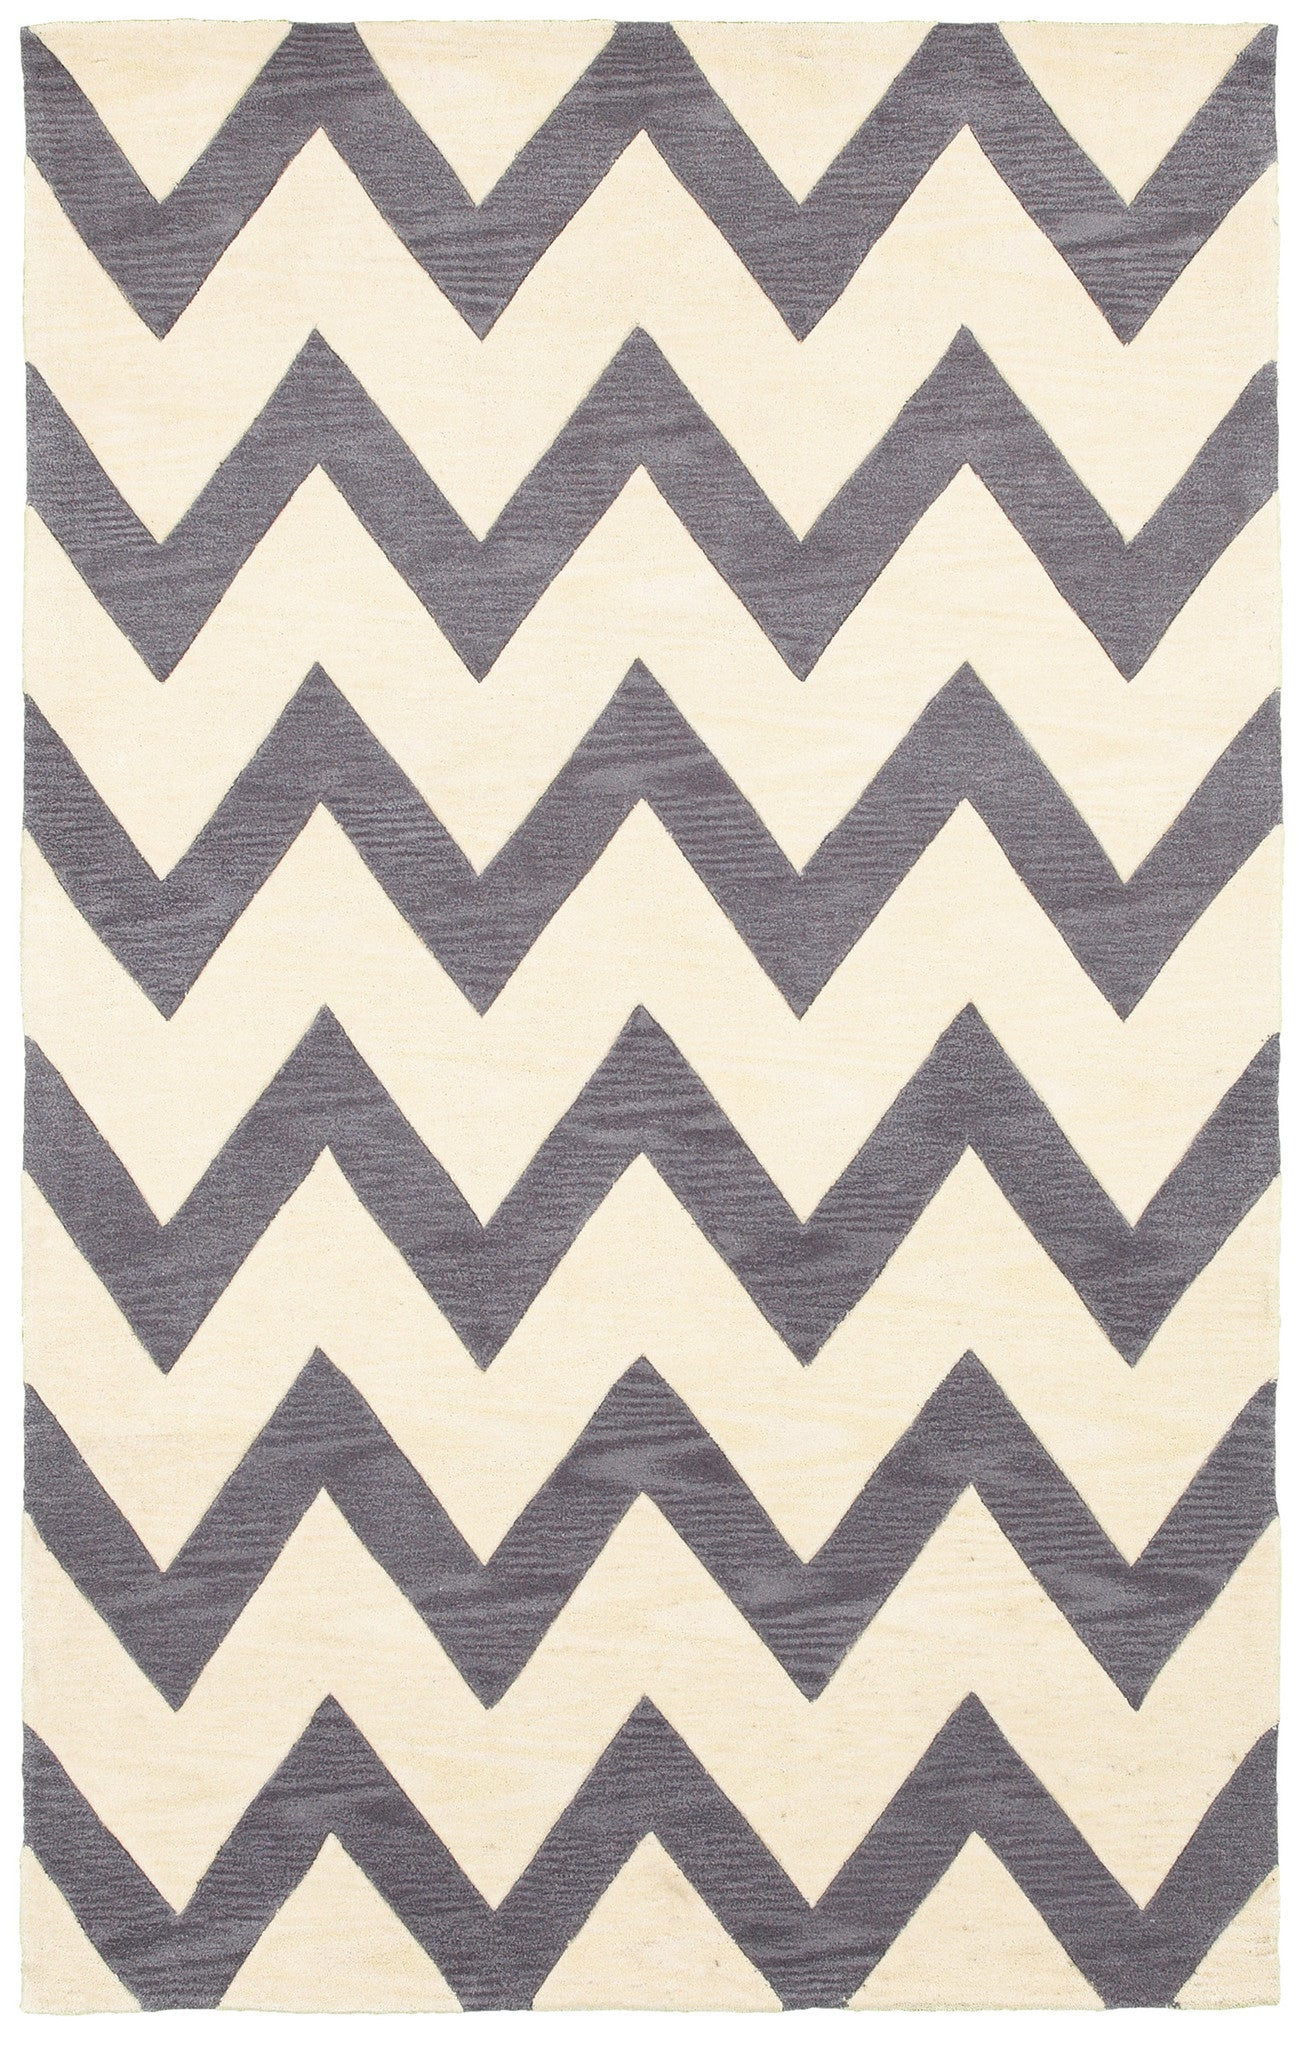 LR Resources Fashion 02516 Gray Area Rug